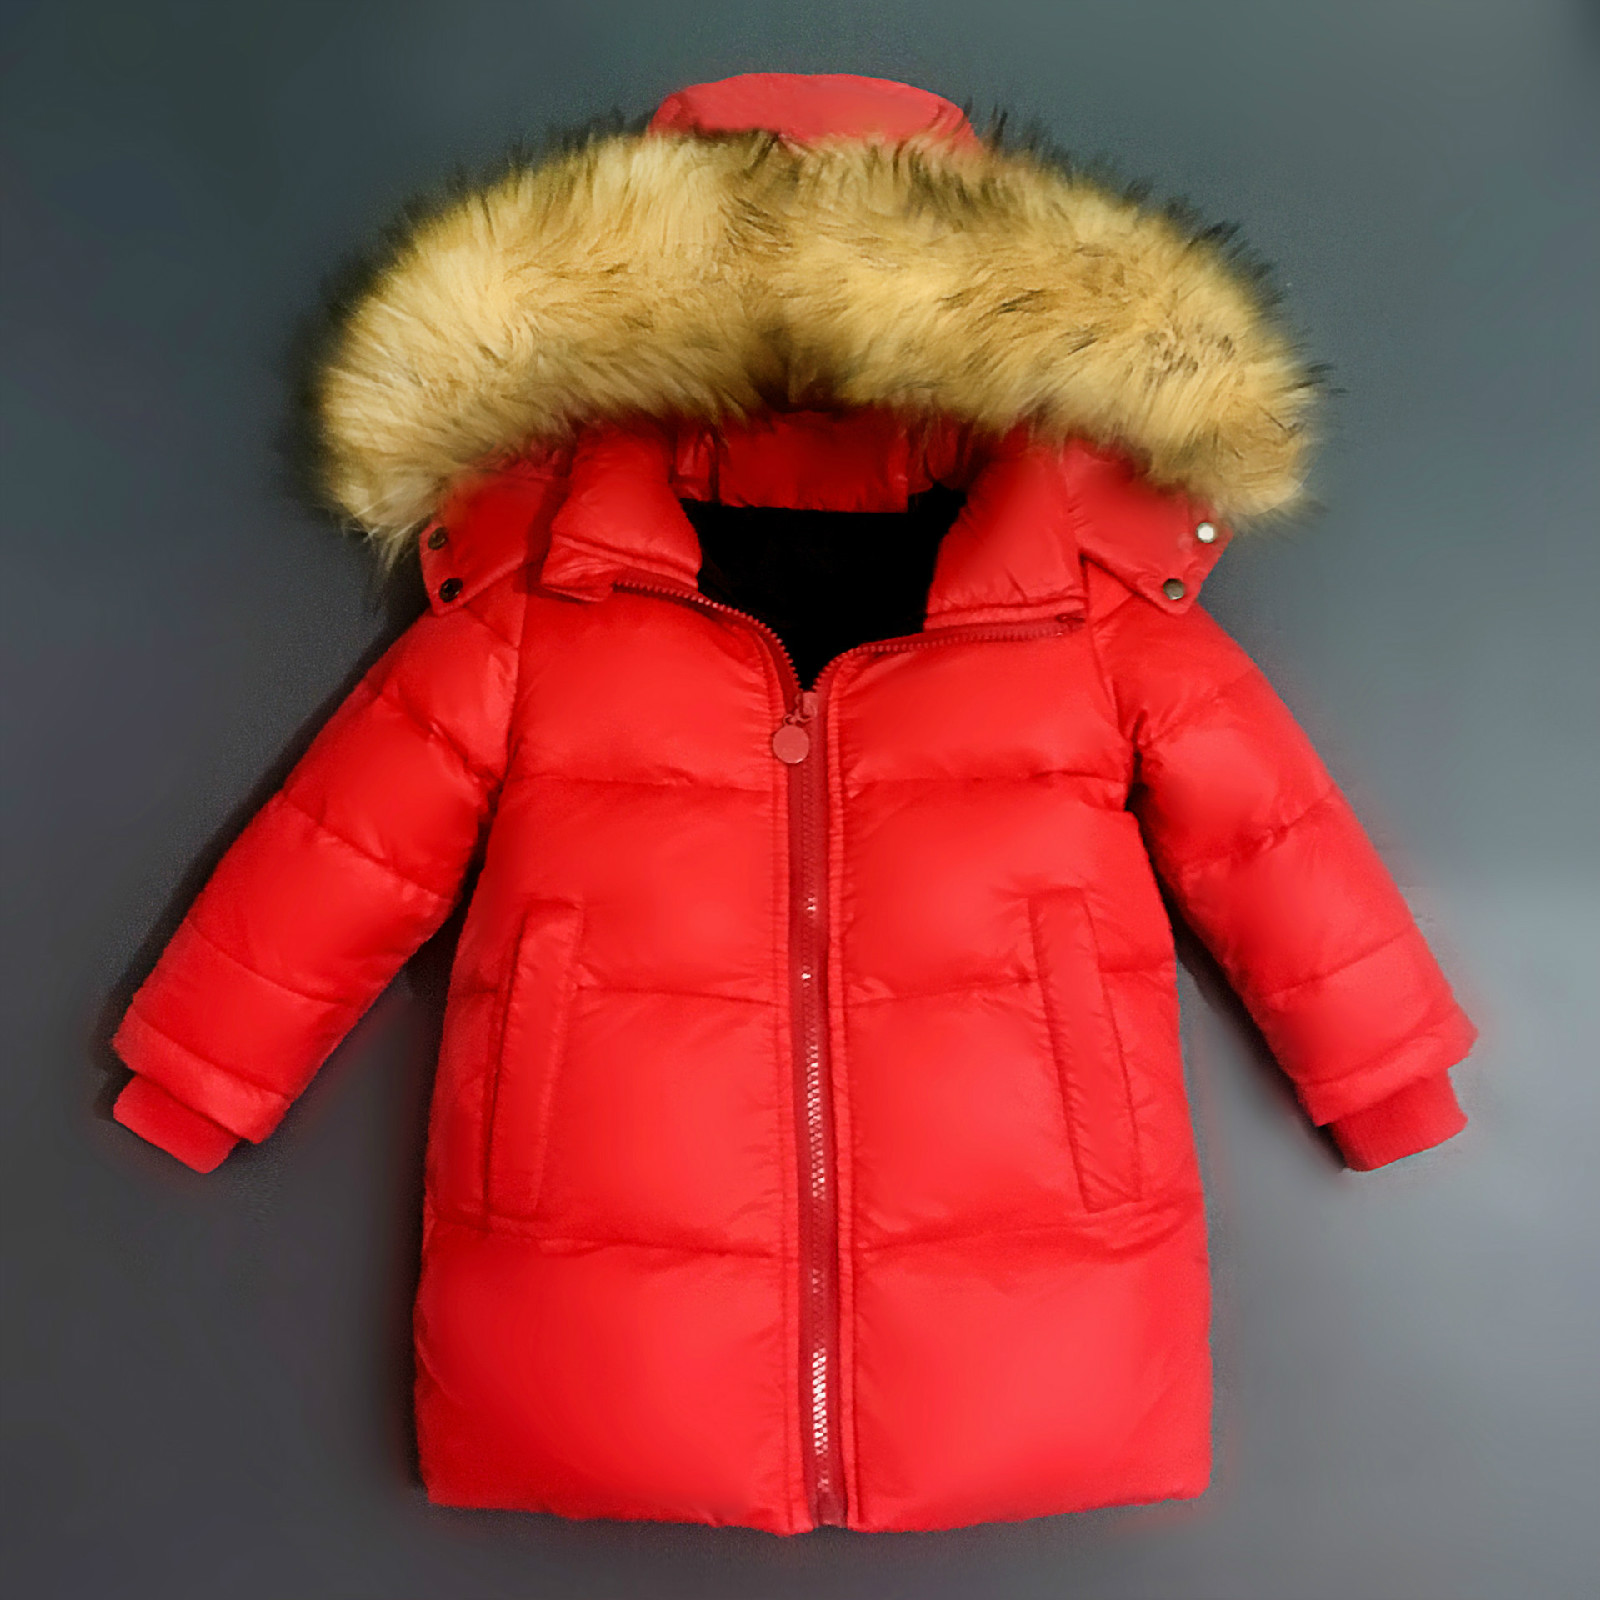 New Year White Duck Down Jacket Thin Down Jacket Girls Teenagers Down Jacket Children Winter Filling Down Jacket Boy new year clothing white duck down jacket thin down jacket girls teenagers down jacket children winter filling down jacket boy